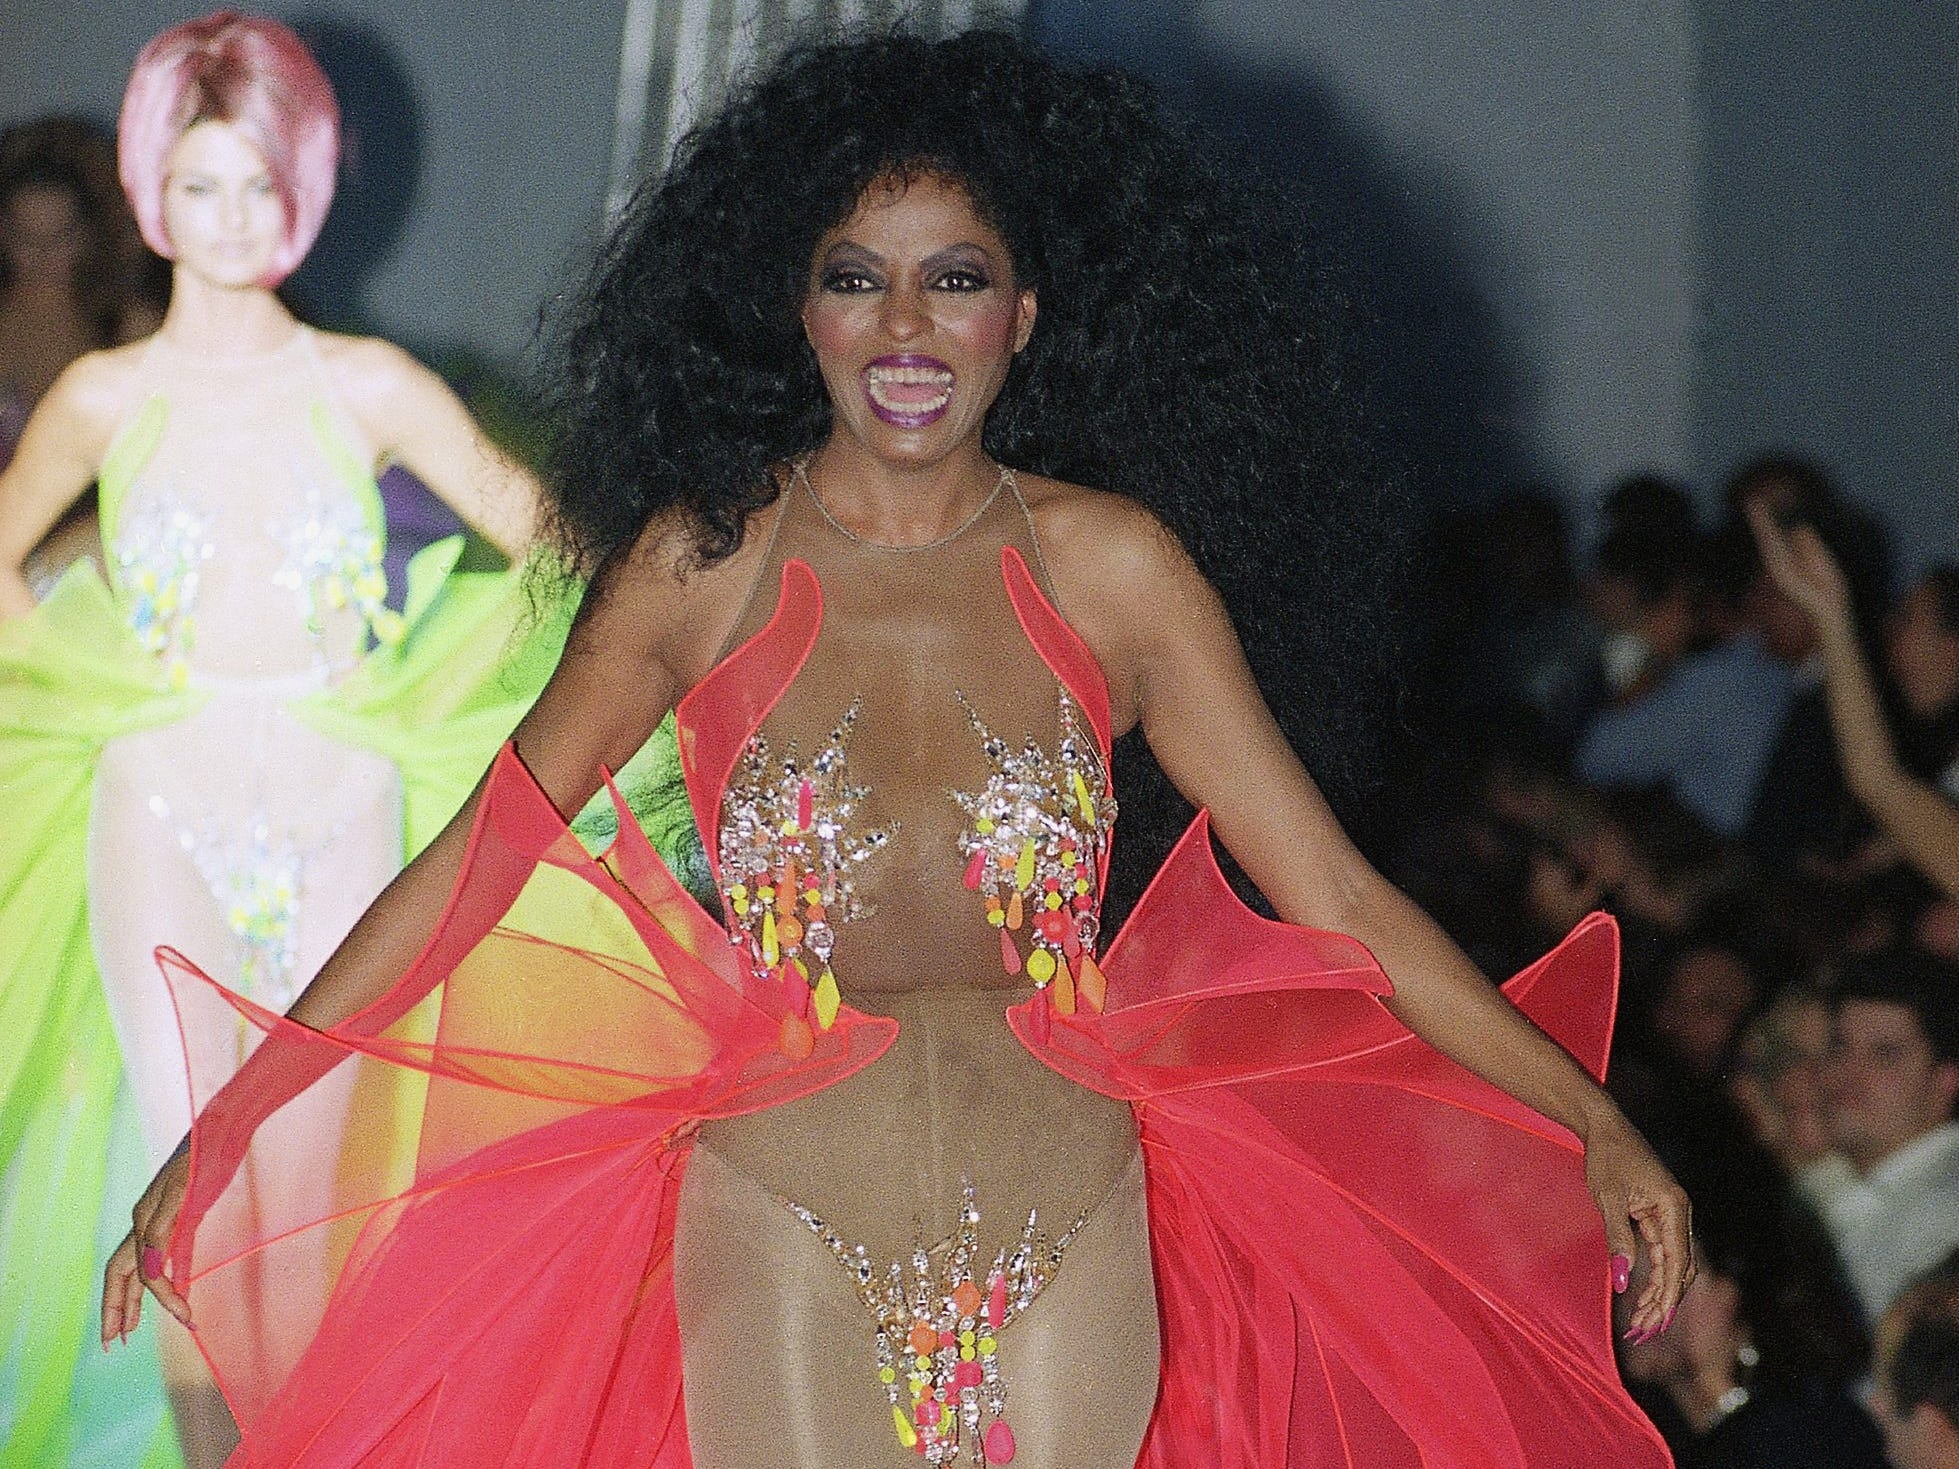 Diana Ross takes a turn down the runway as a guest model for French fashion designer Thierry Mugler's summer ready-to-wear collection in Paris, Oct. 10, 1990.